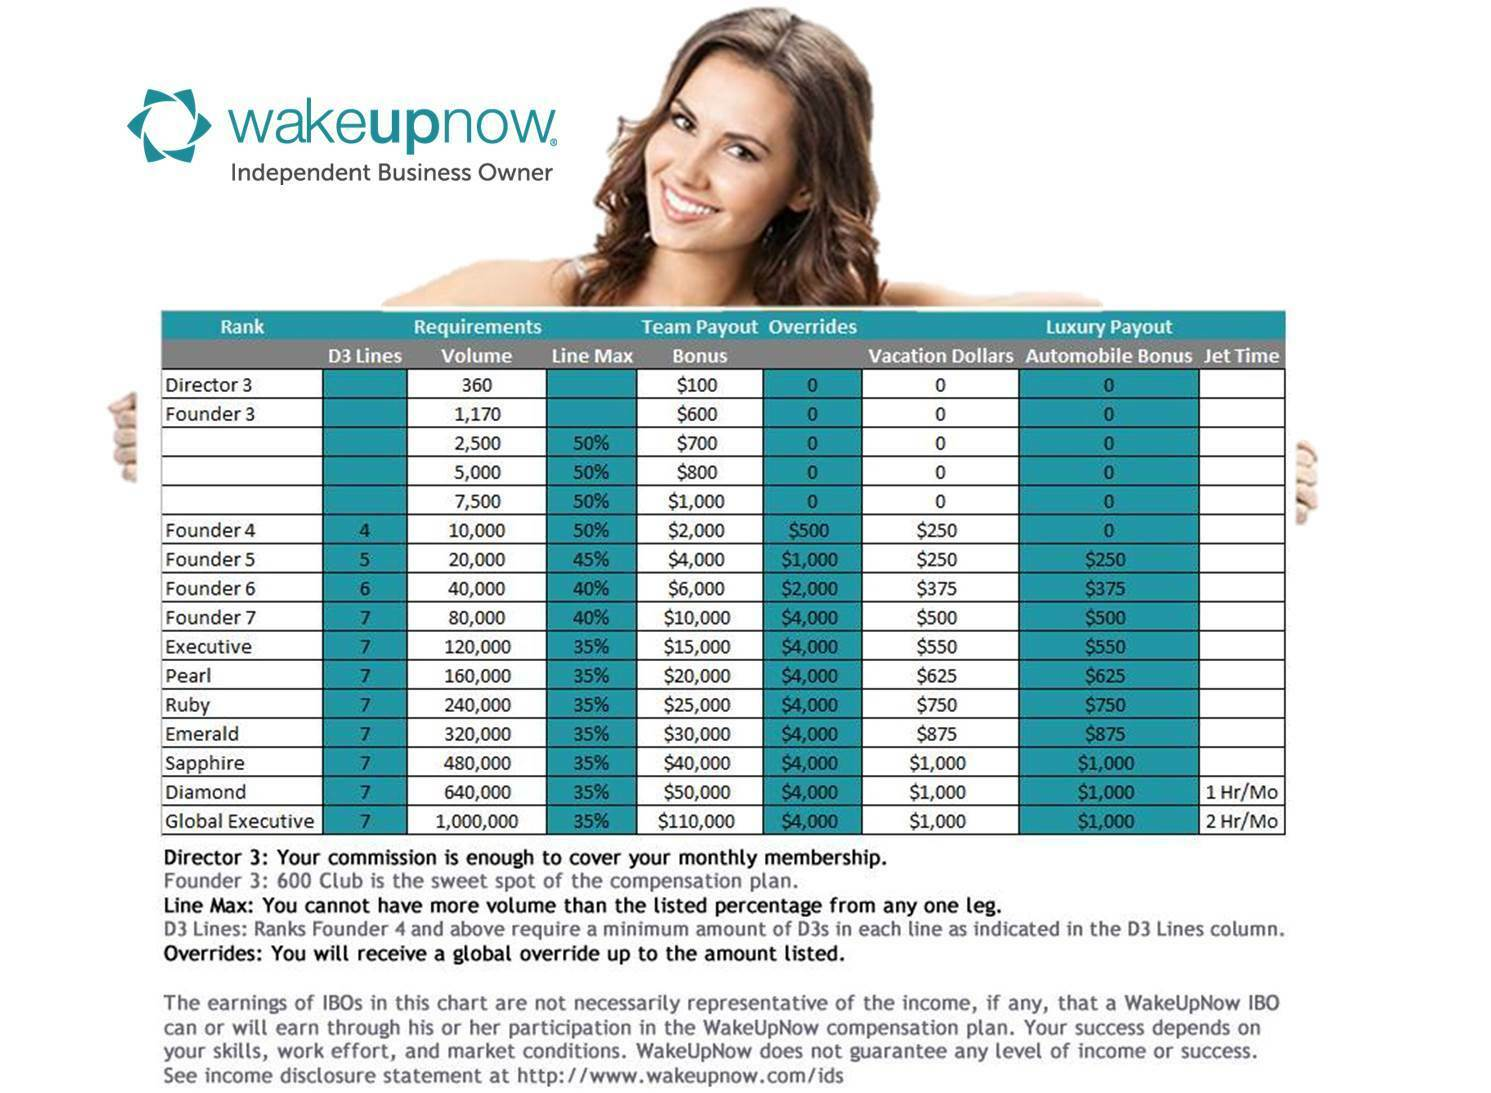 WakeUpNow Traveling deals, discounts with over 33,000 companies!